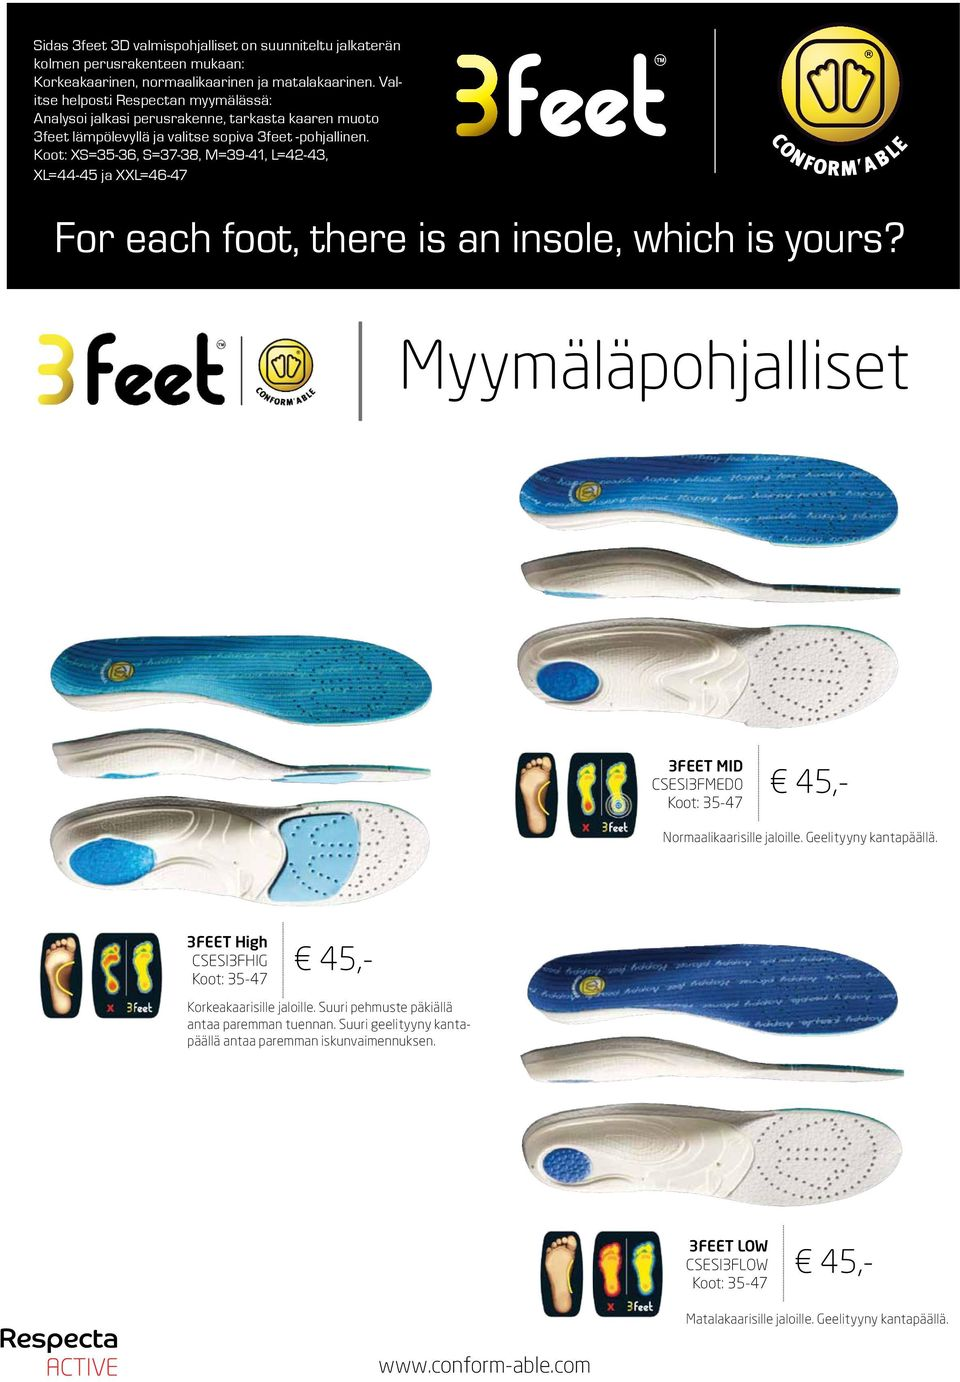 Koot: XS=35-36, S=37-38, M=39-41, L=42-43, XL=44-45 ja XXL=46-47 For each foot, there is an insole, which is yours? arch feet arch feet arch feet Myymäläpohjalliset www.conform-able.